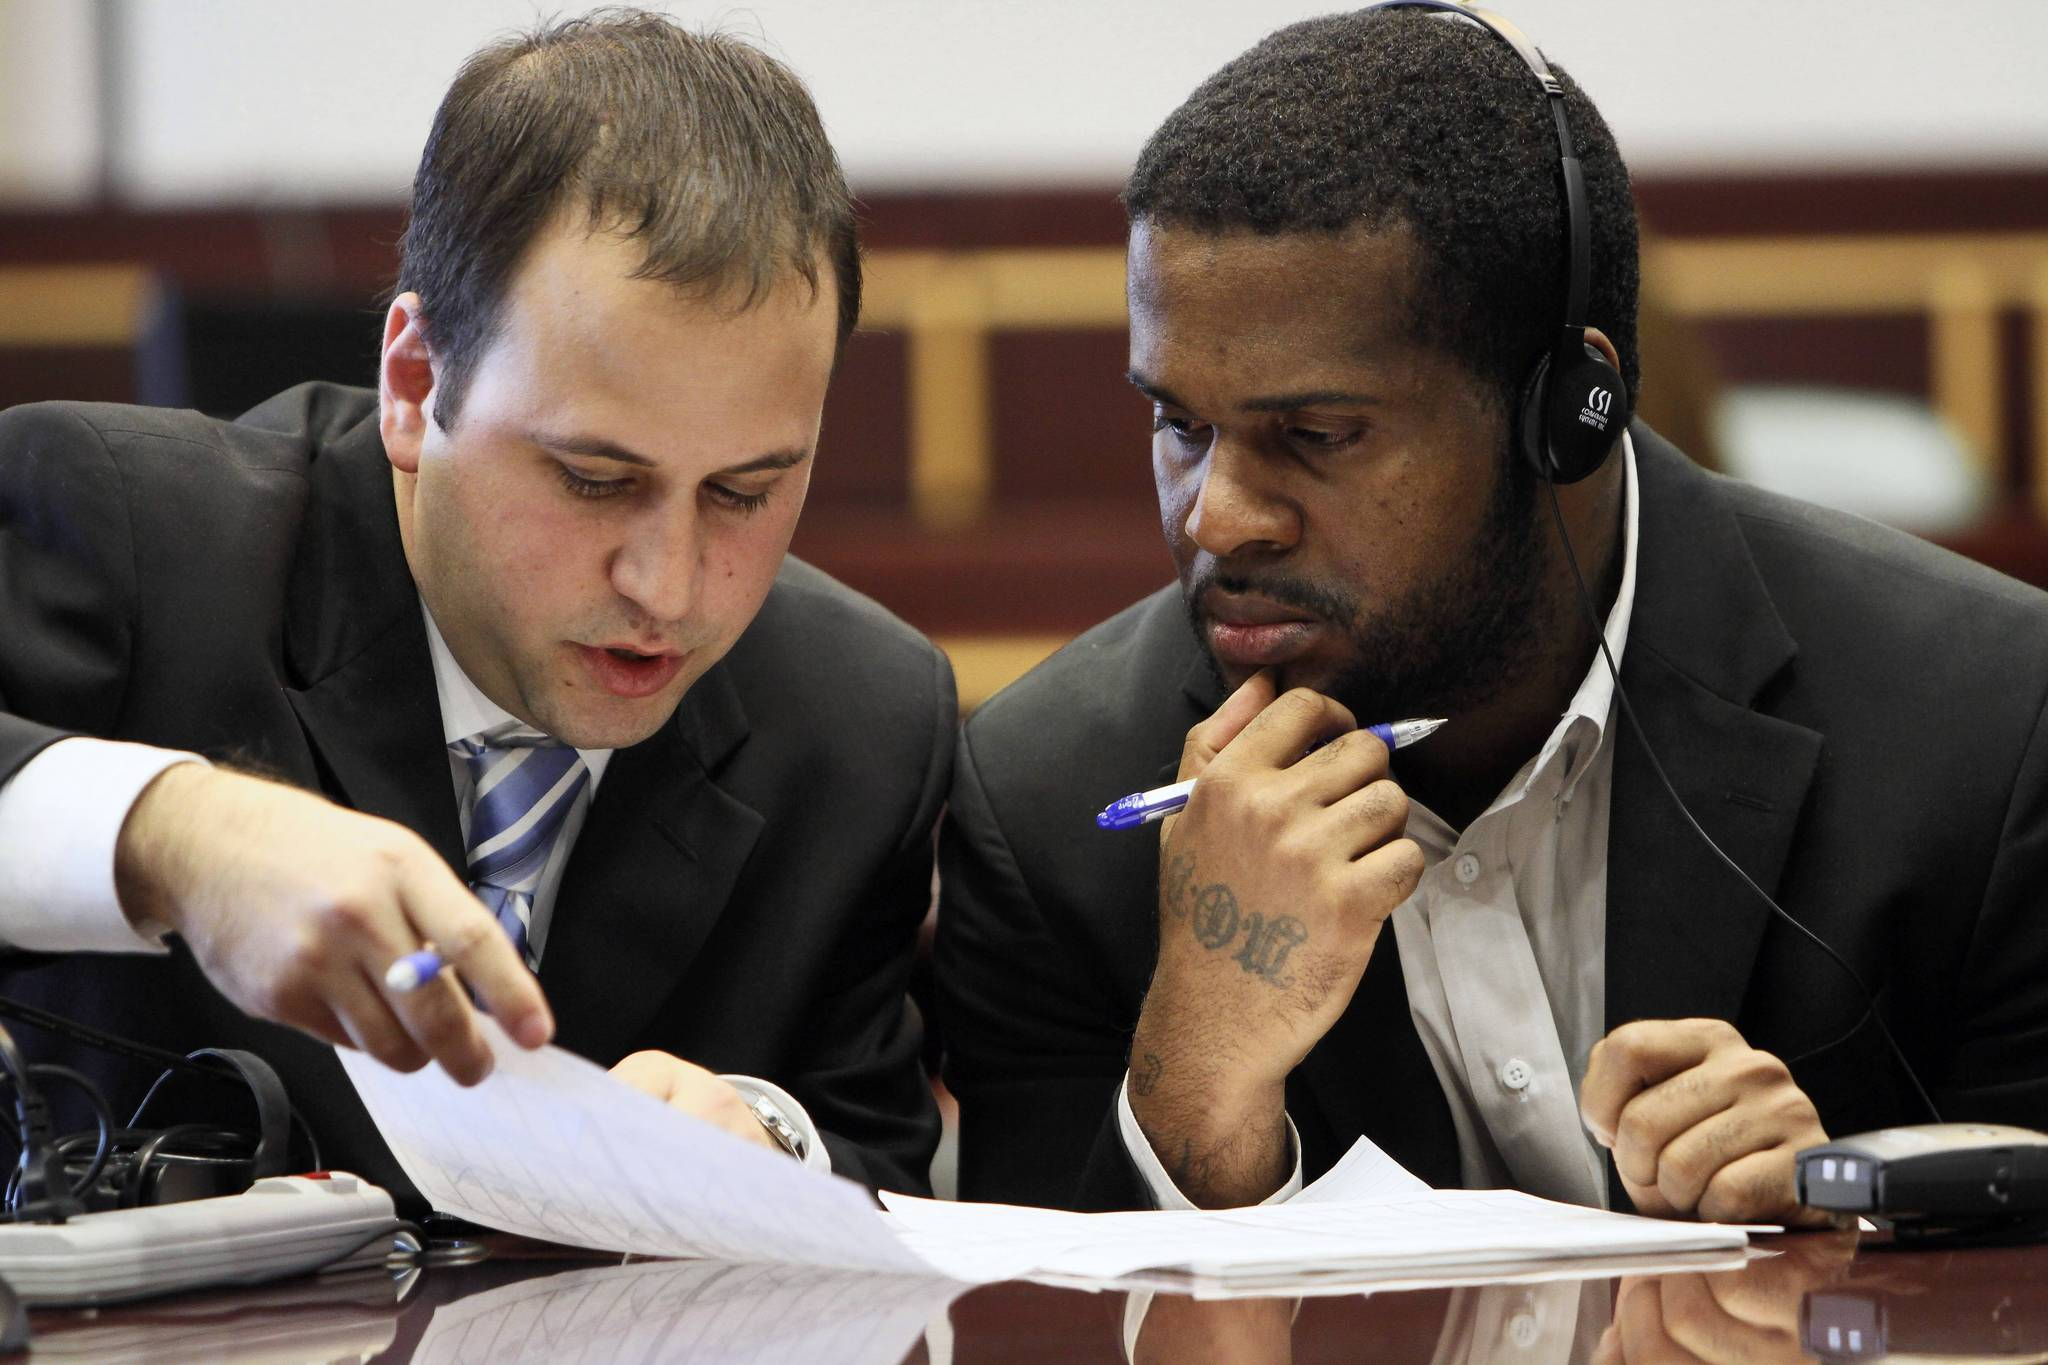 Left to Right, Attorney Josh Meyer and Jean Touze confer during the jury selection for his trial at the Orange County Courthouse, on Monday, September 4, 2012.